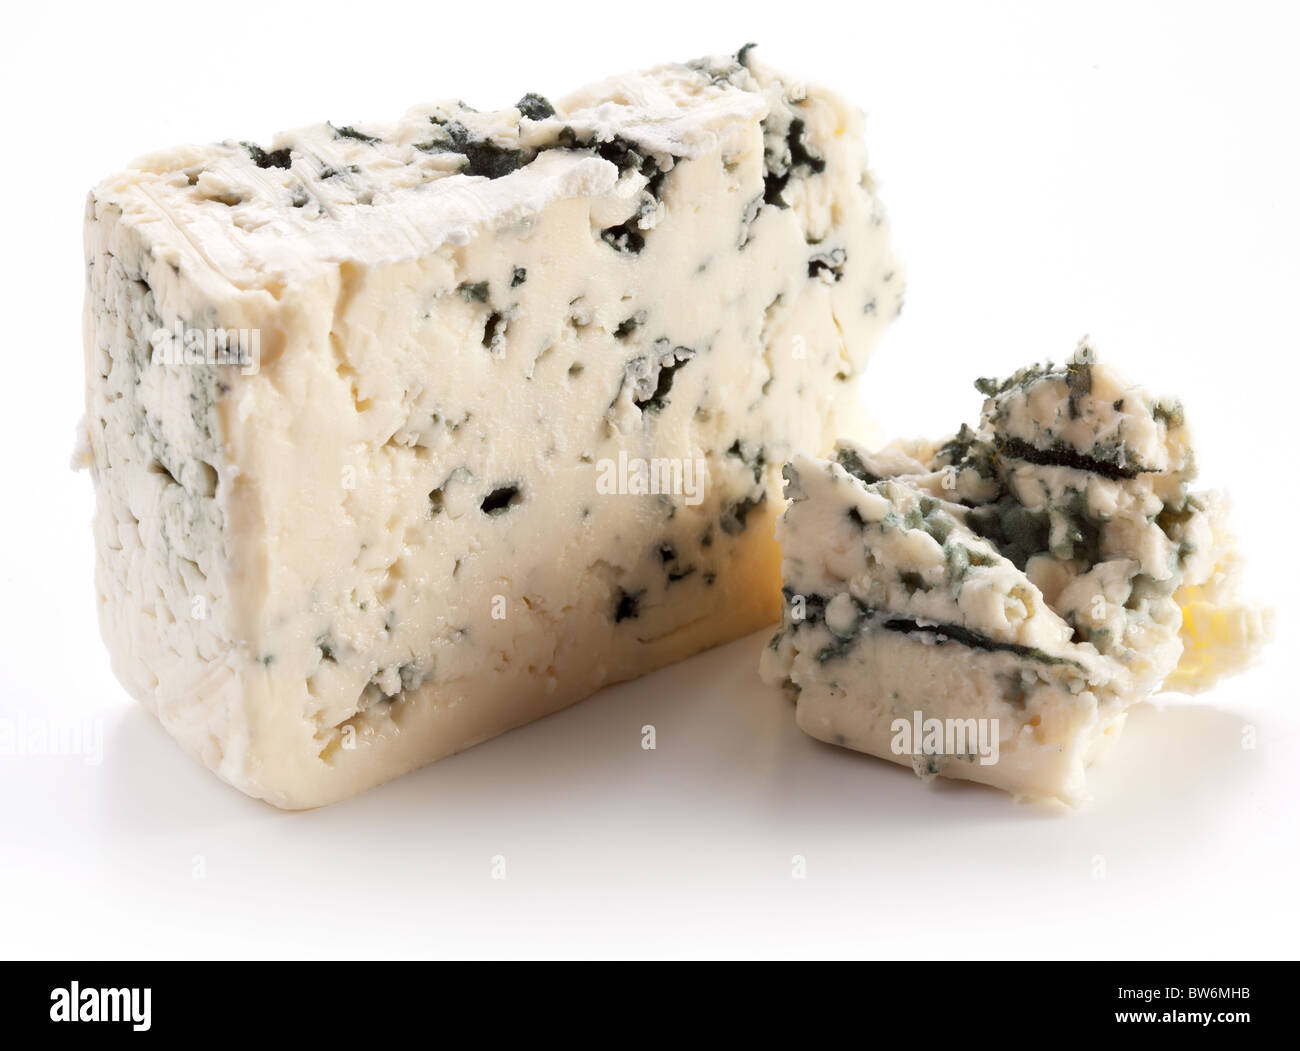 Blue cheese on a white background. - Stock Image